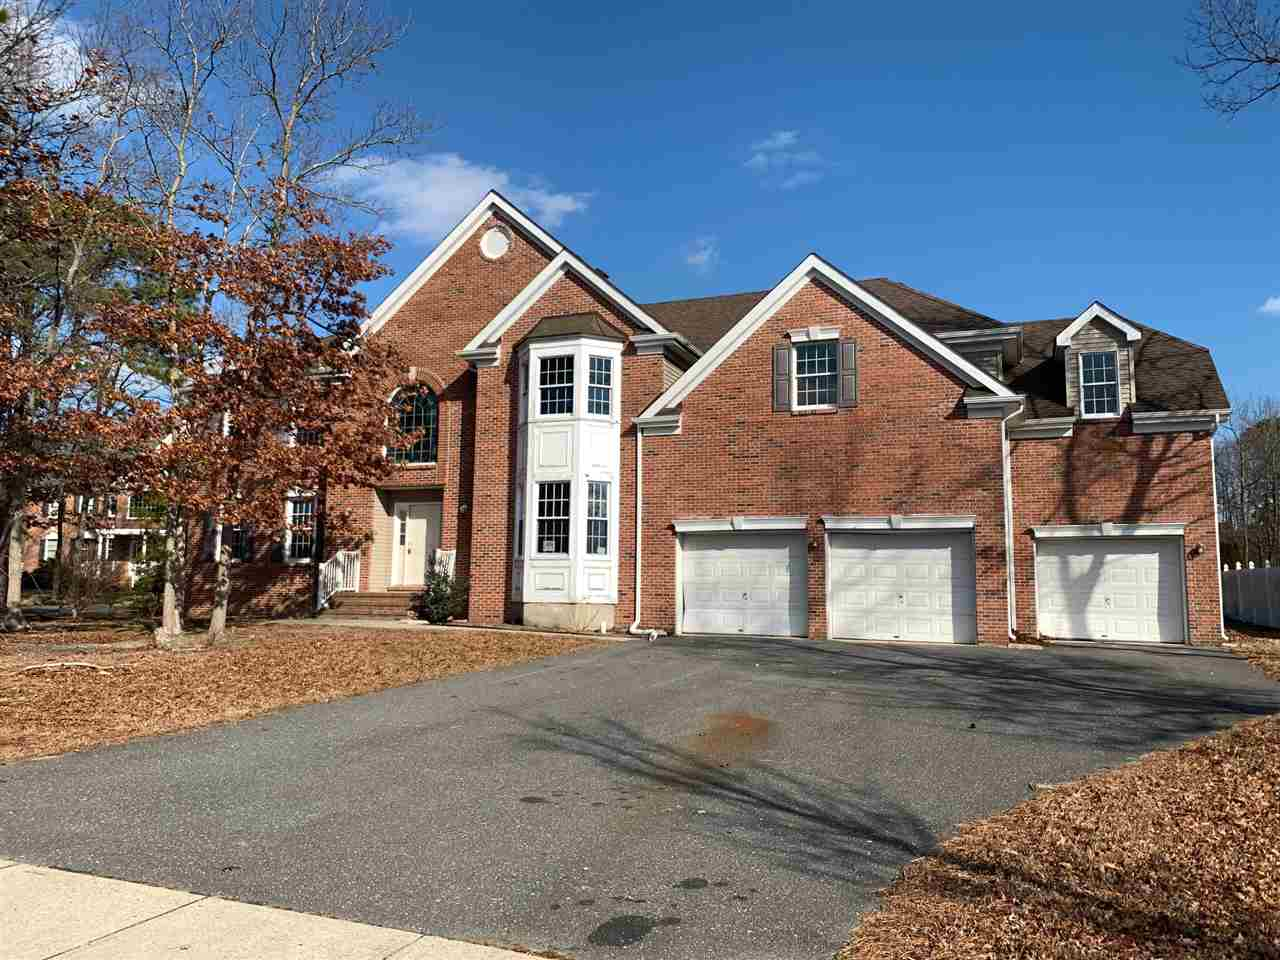 22 Hartford, Egg Harbor Township